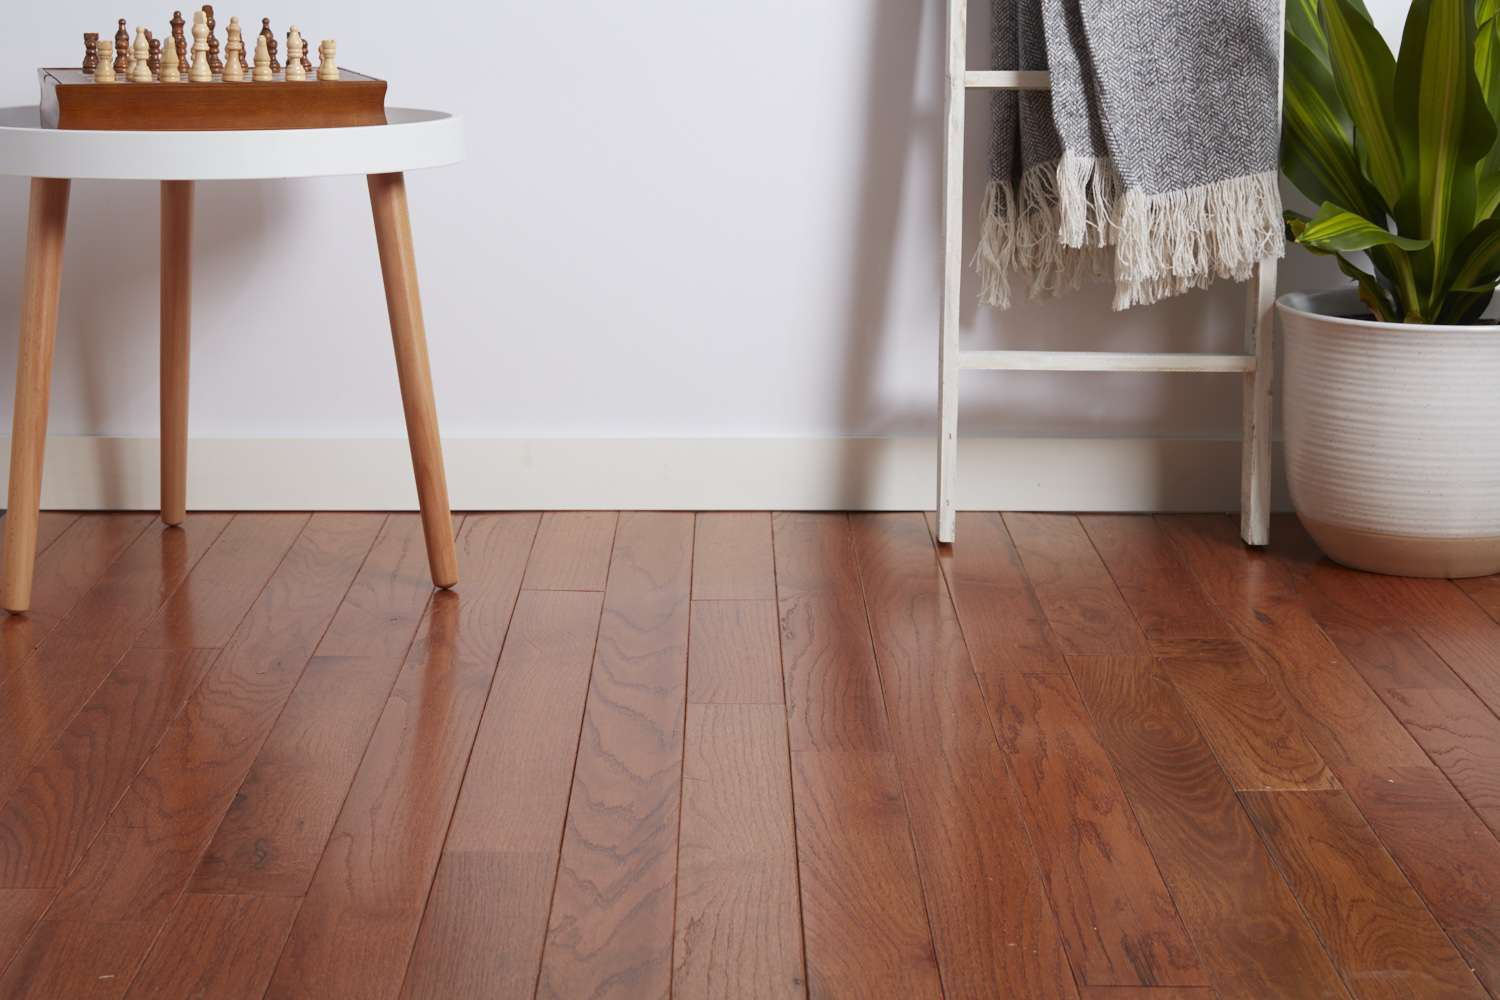 Hardwood flooring with side table and chess set by houseplant